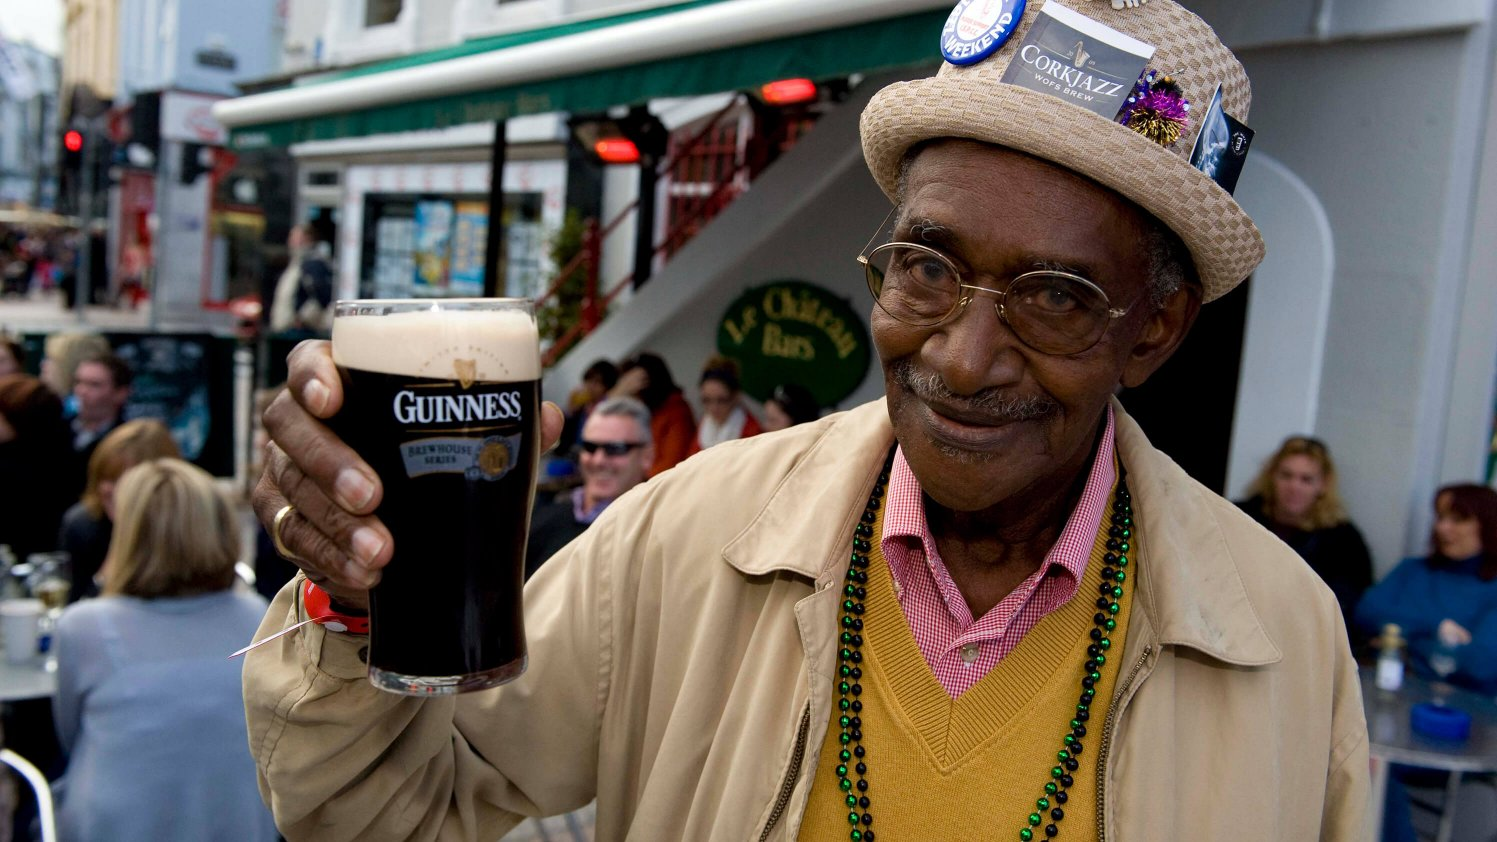 Man drinking Guinness